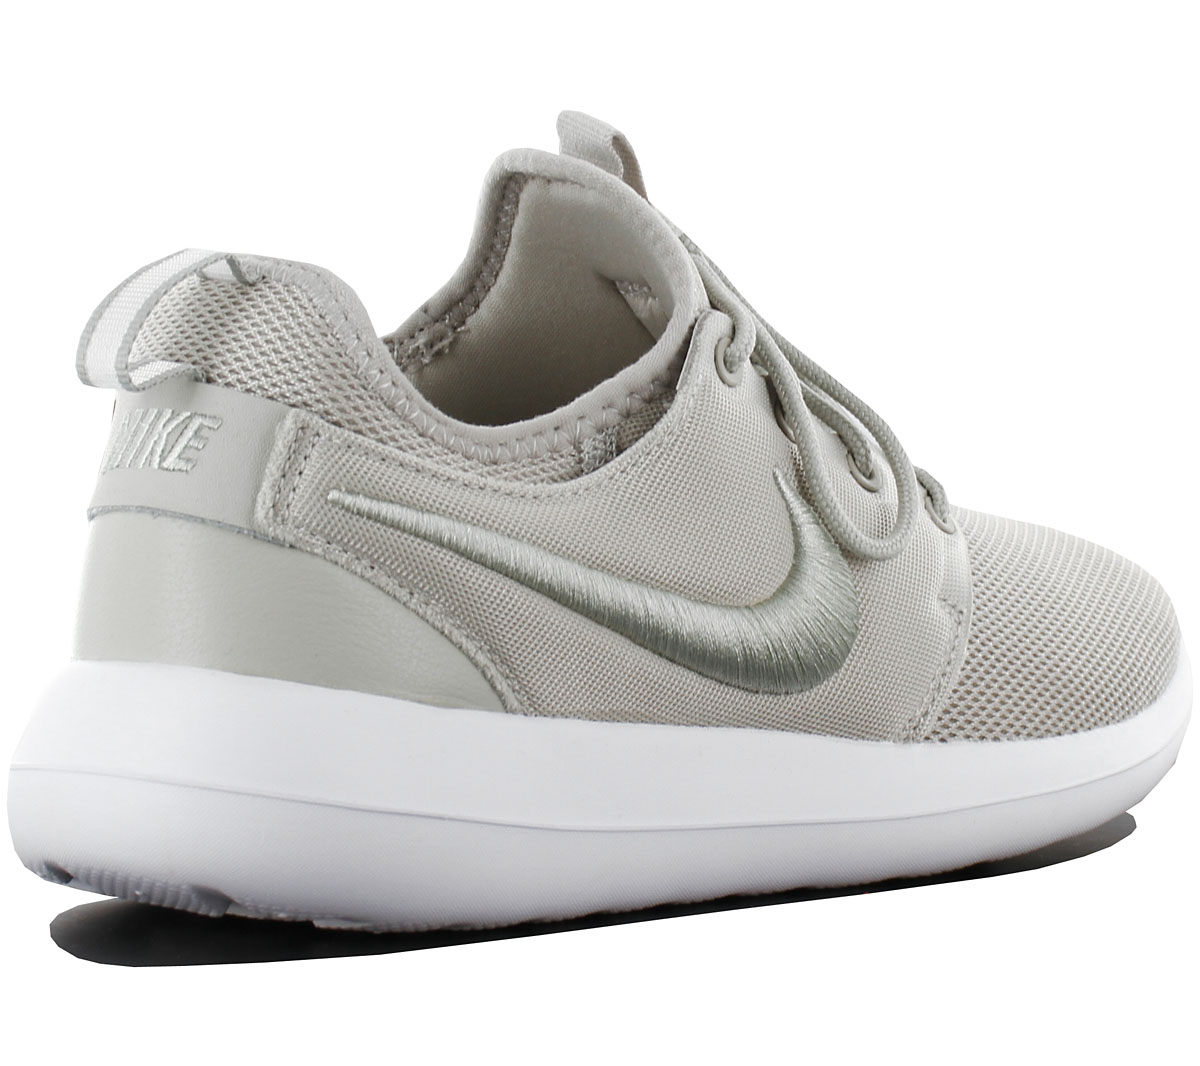 nike roshe two br breeze damen sneaker schuhe grau 896445. Black Bedroom Furniture Sets. Home Design Ideas